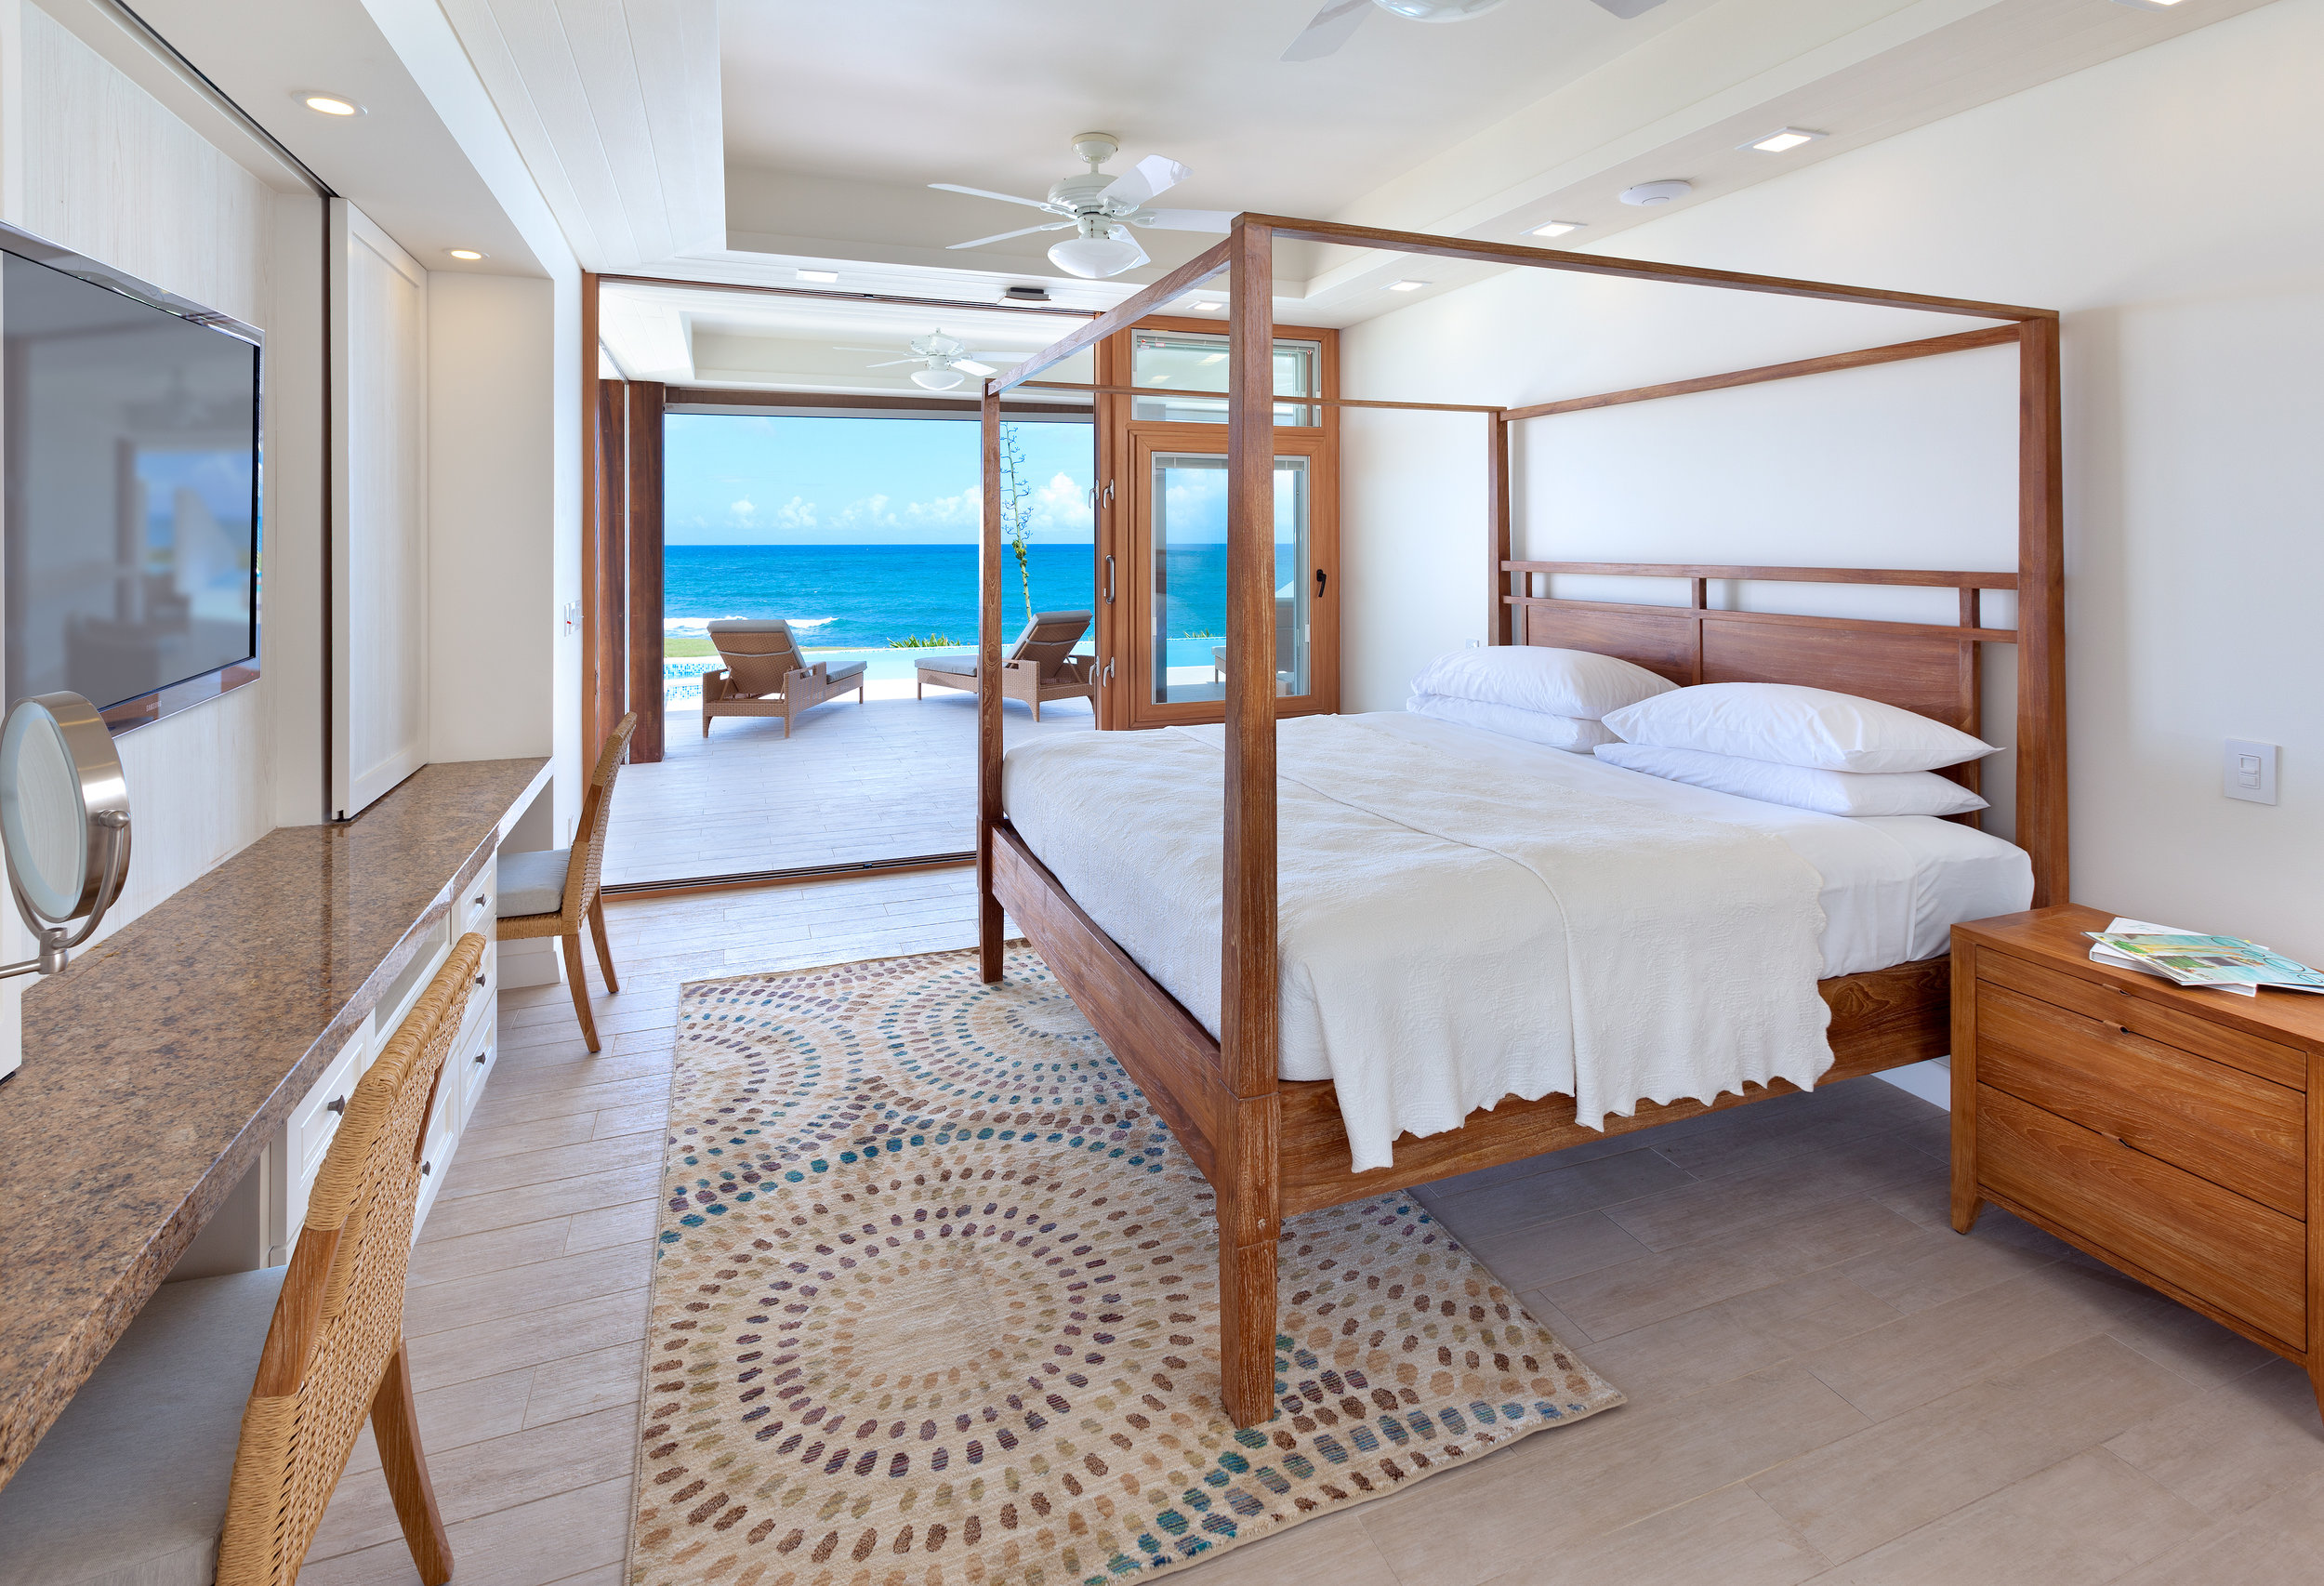 BEACHES HOUSES MASTER BEDROOM.jpg